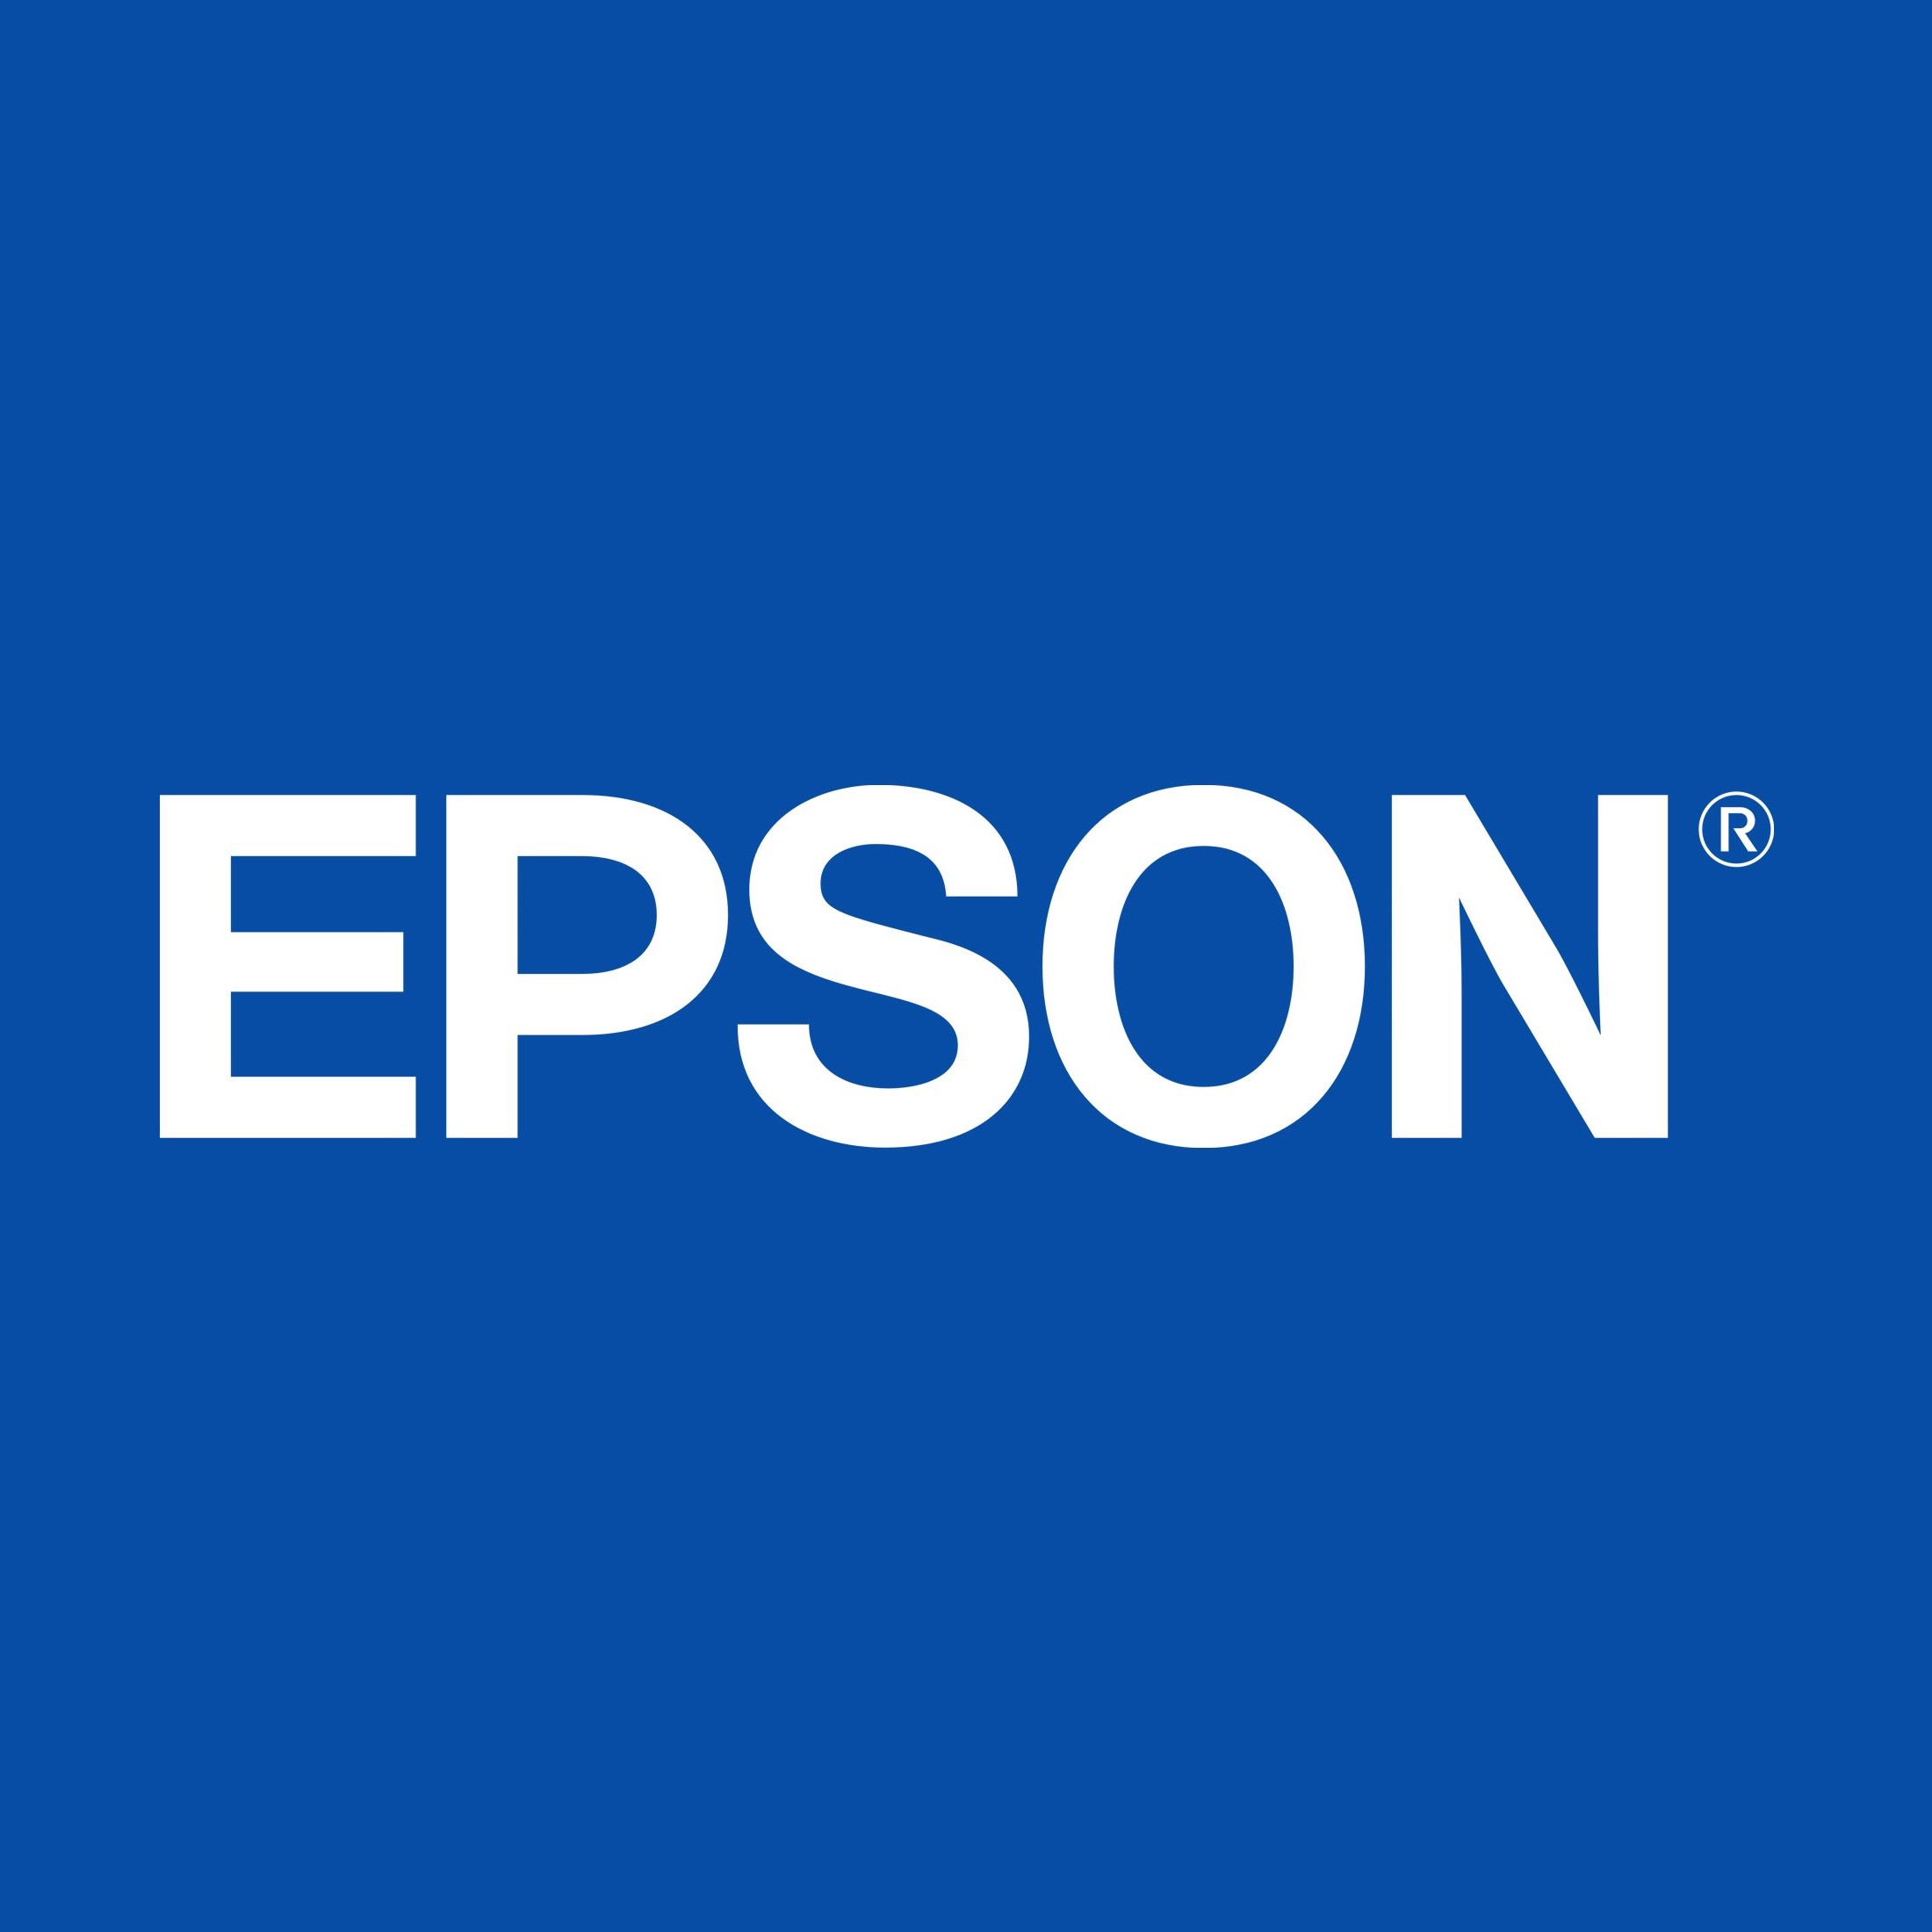 Epson� Epson PictureMate PM-400 Personal Photo Lab – Only $199.99.